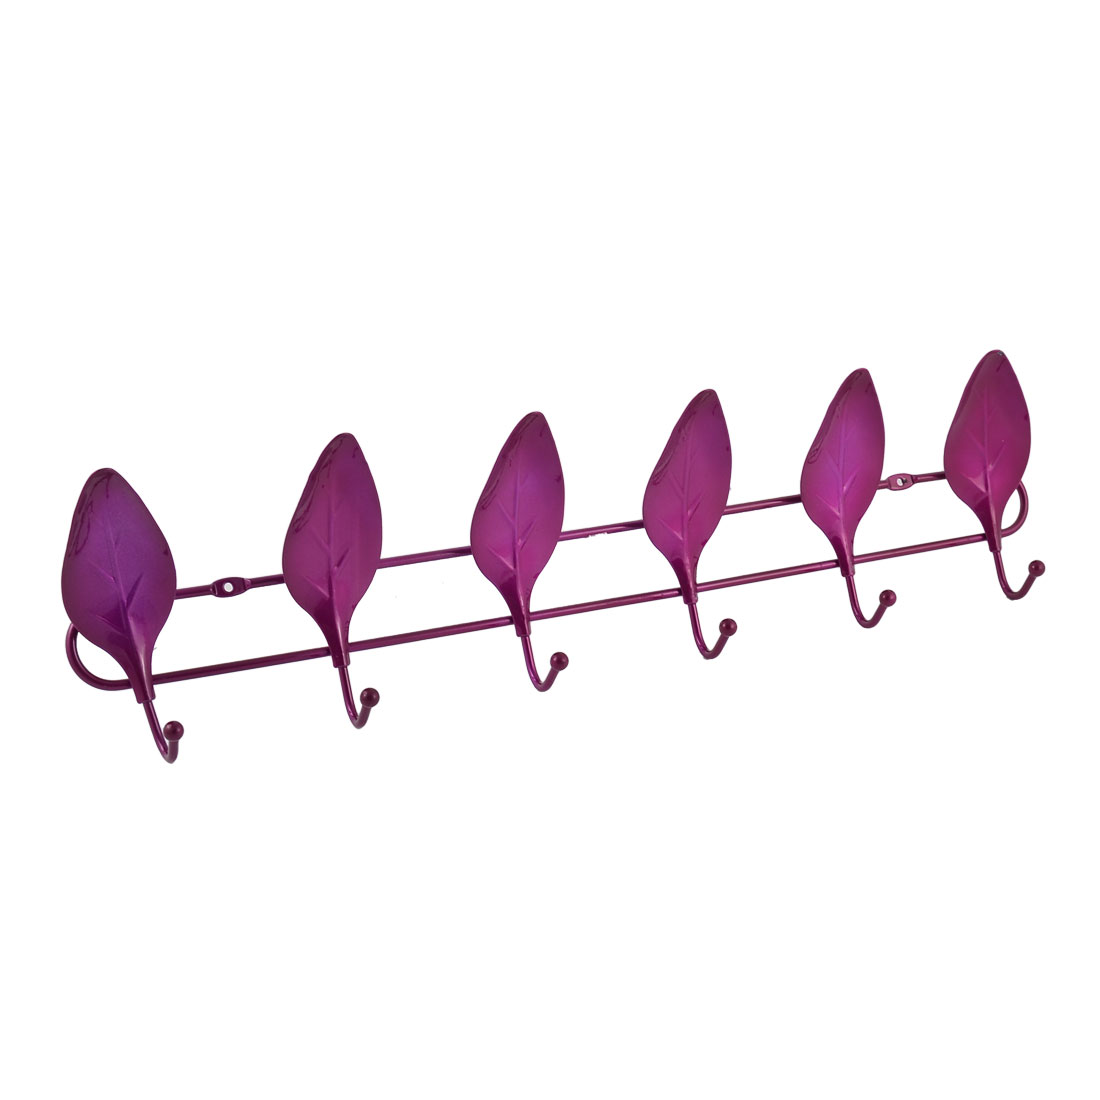 Household Metal Leaf Shaped Wall Mounted Towel Clothes 6 Hooks Hanger Rack Fuchsia